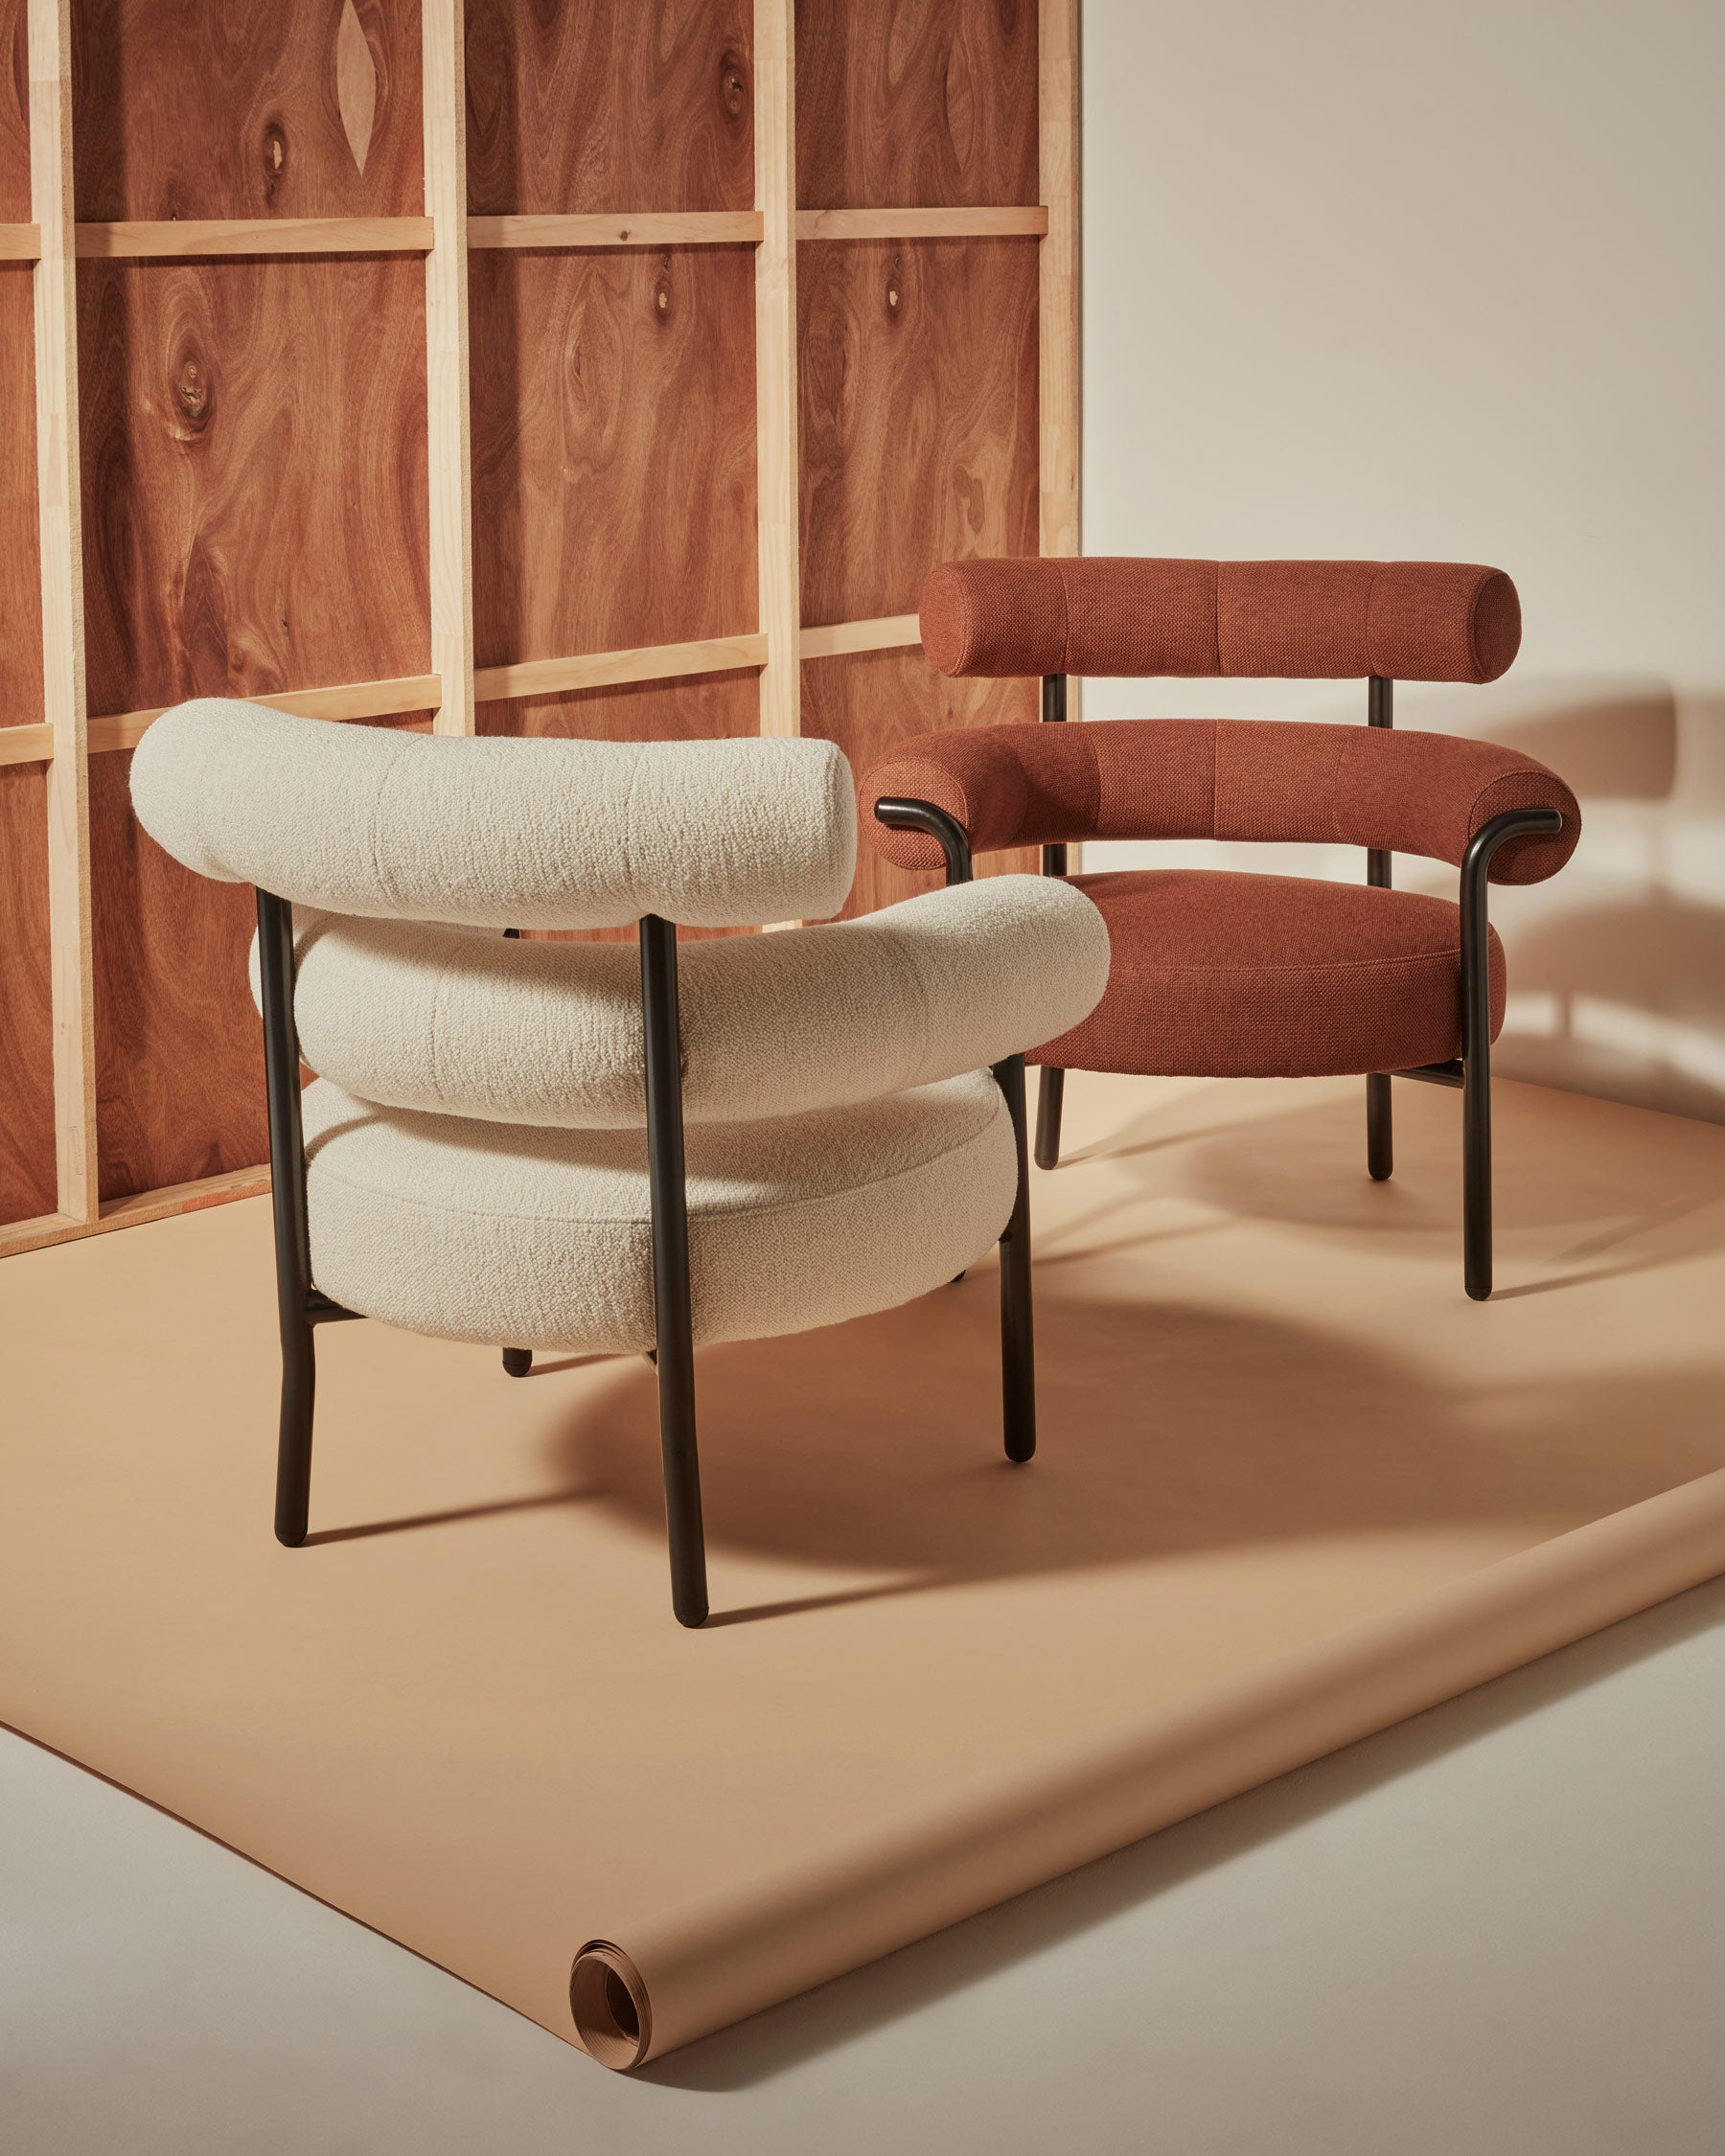 Olio Armchair by Christina Bricknell and Gibson Karlo   Round Upholstered Chair Steel Frame   DesignByThem